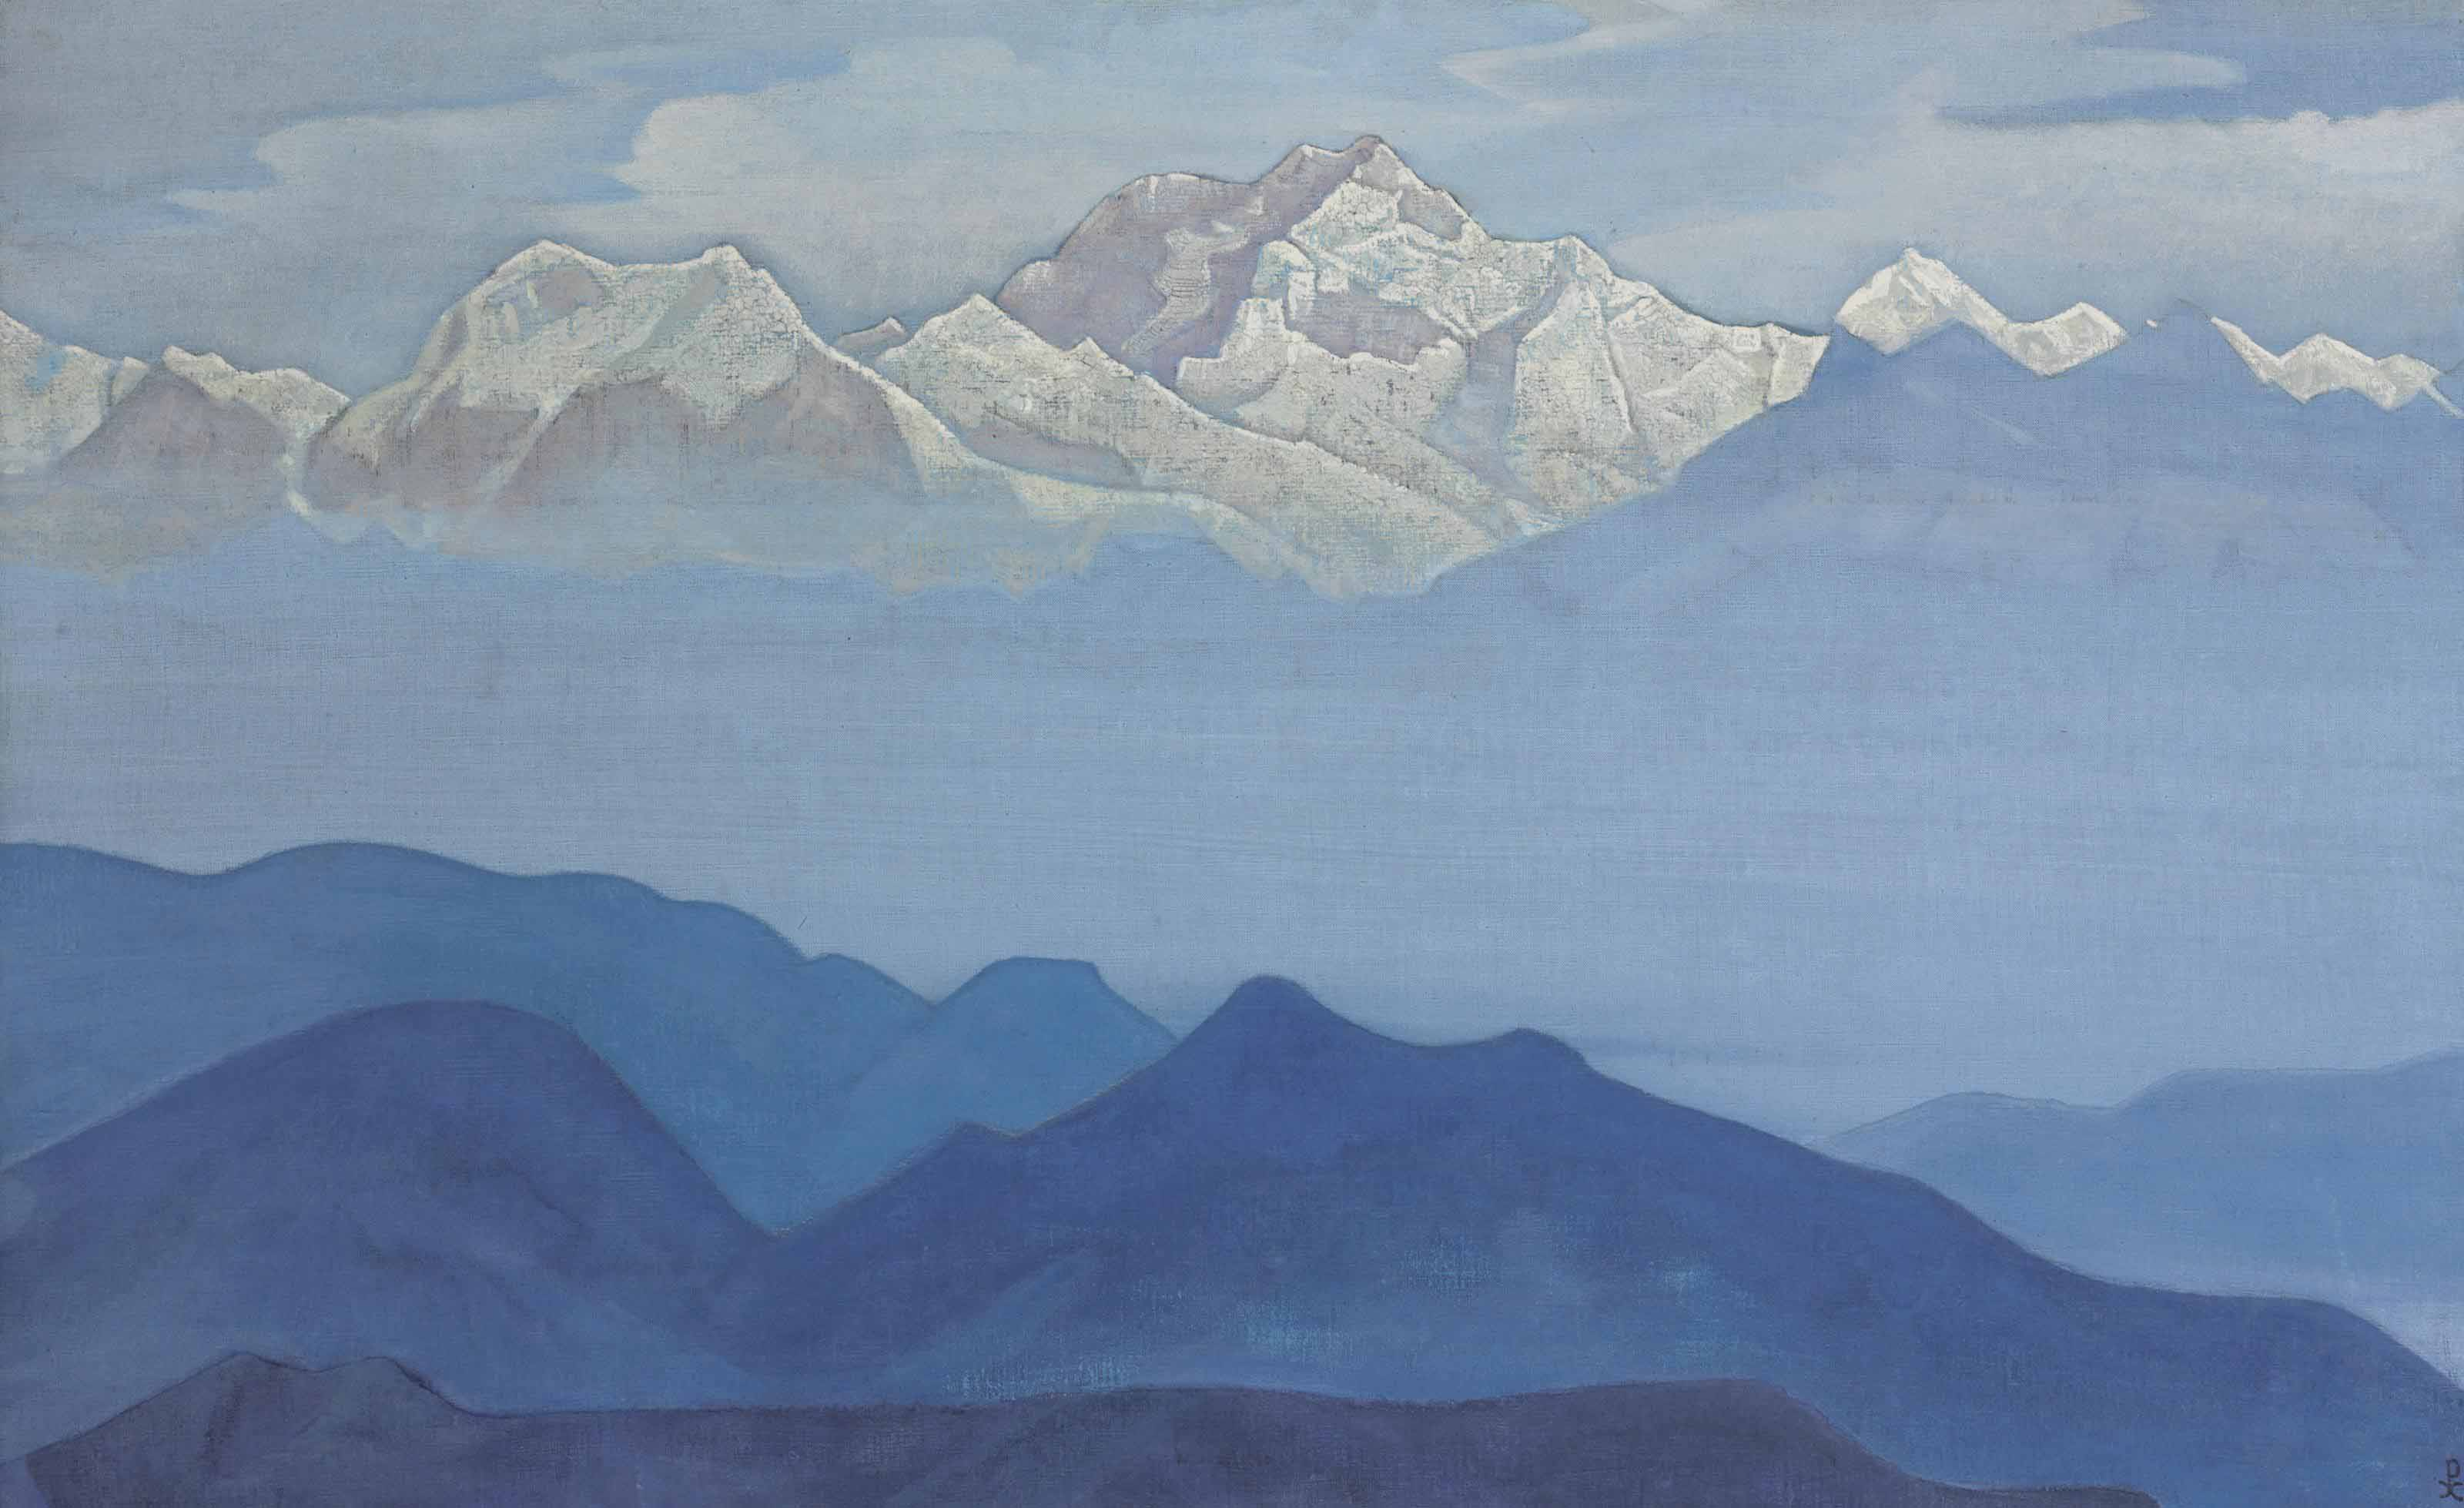 Himalayas from the Sikkim series